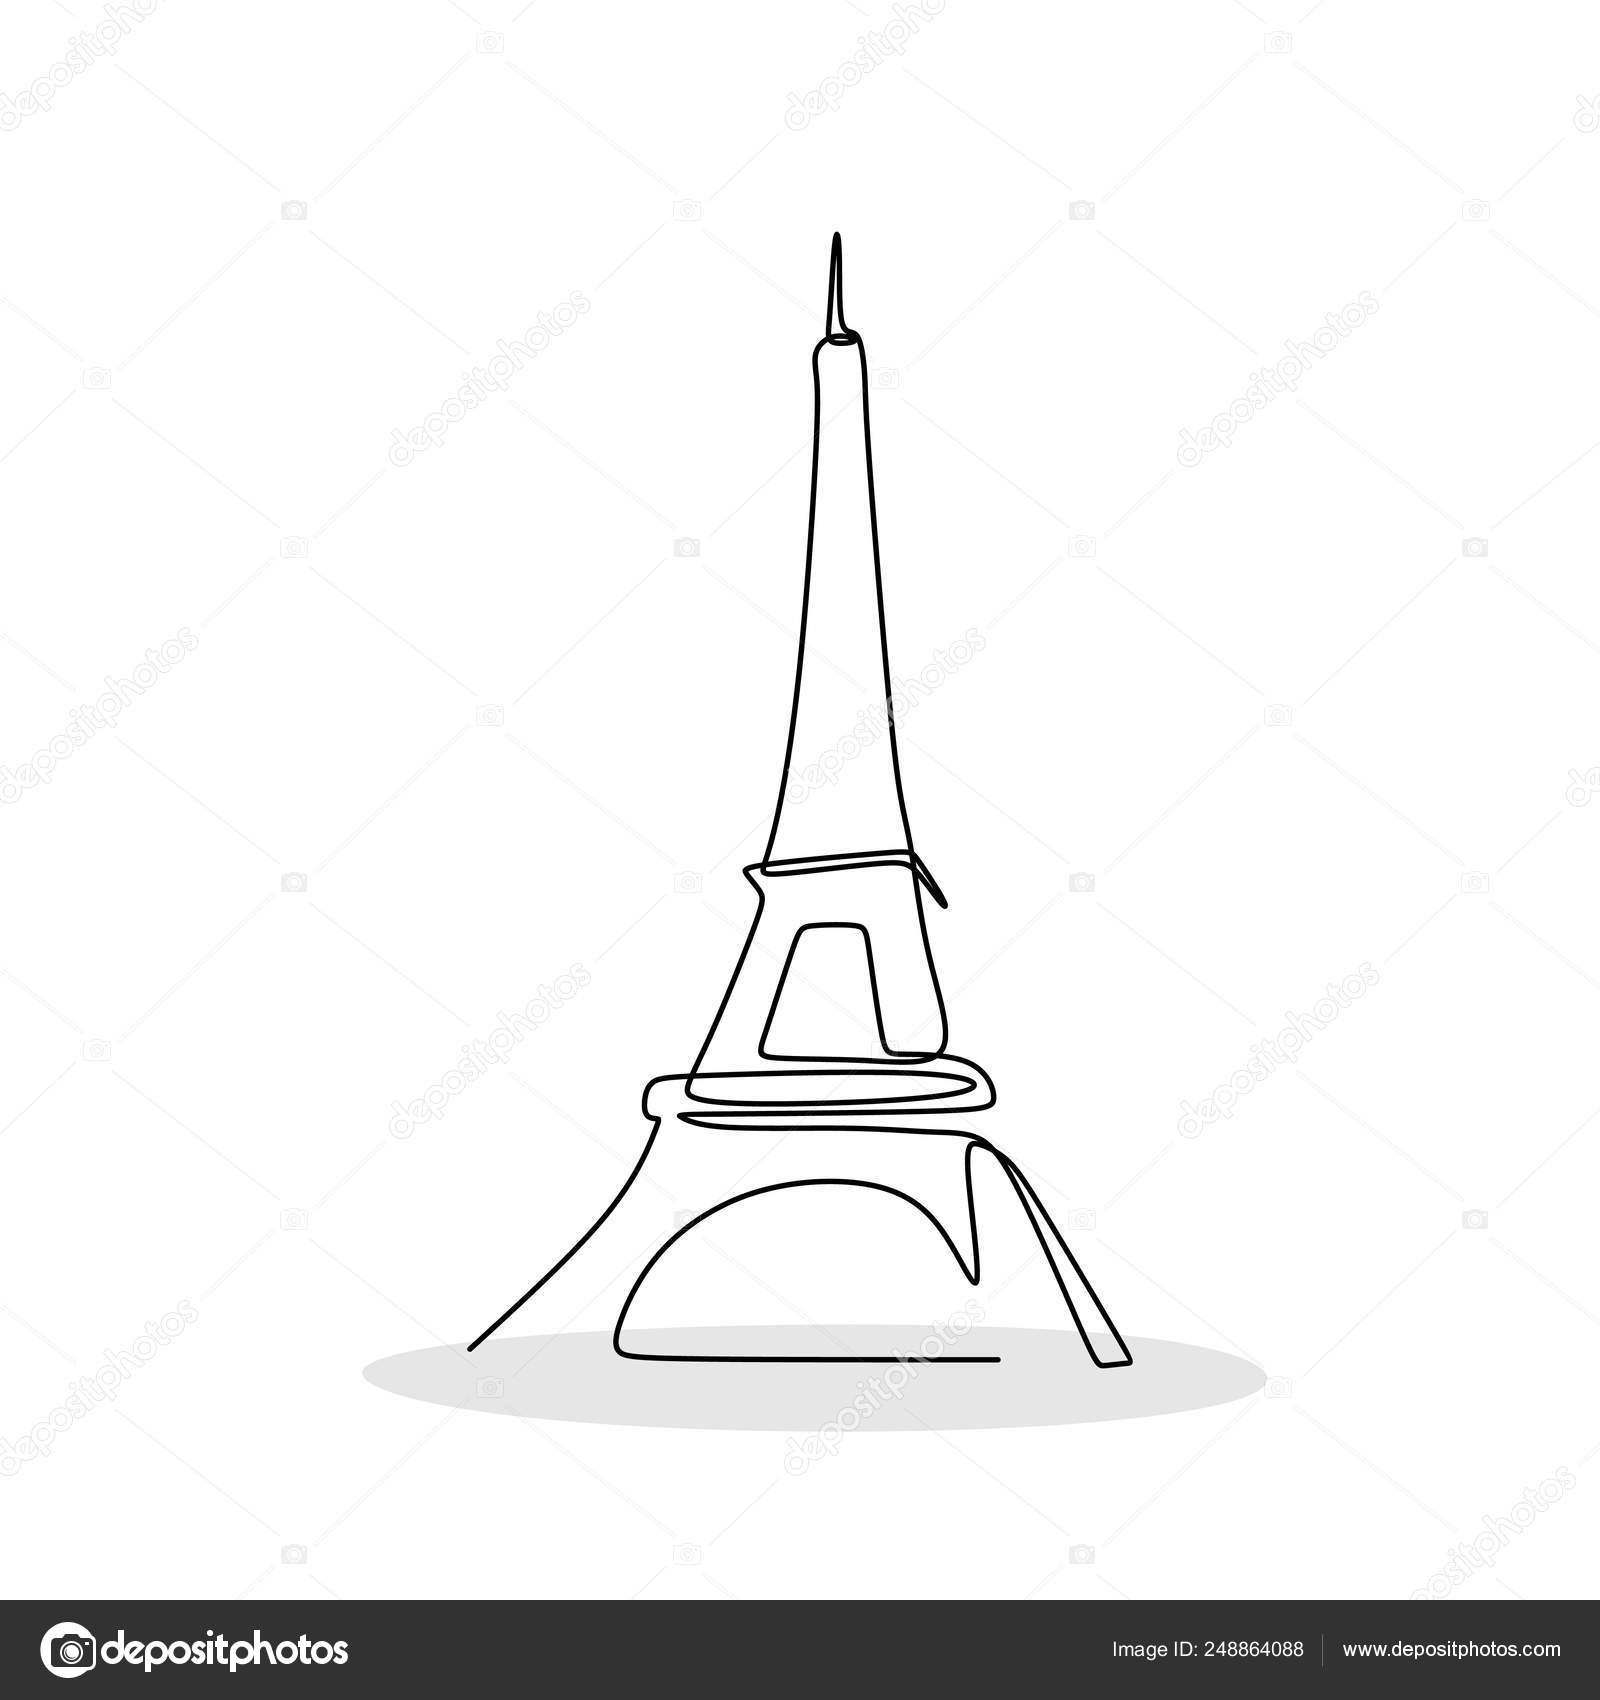 Drawings Line Drawing Of The Eiffel Tower Eiffel Tower Paris One Line Drawing Vector Illustration Stock Vector C Ngupakarti 248864088